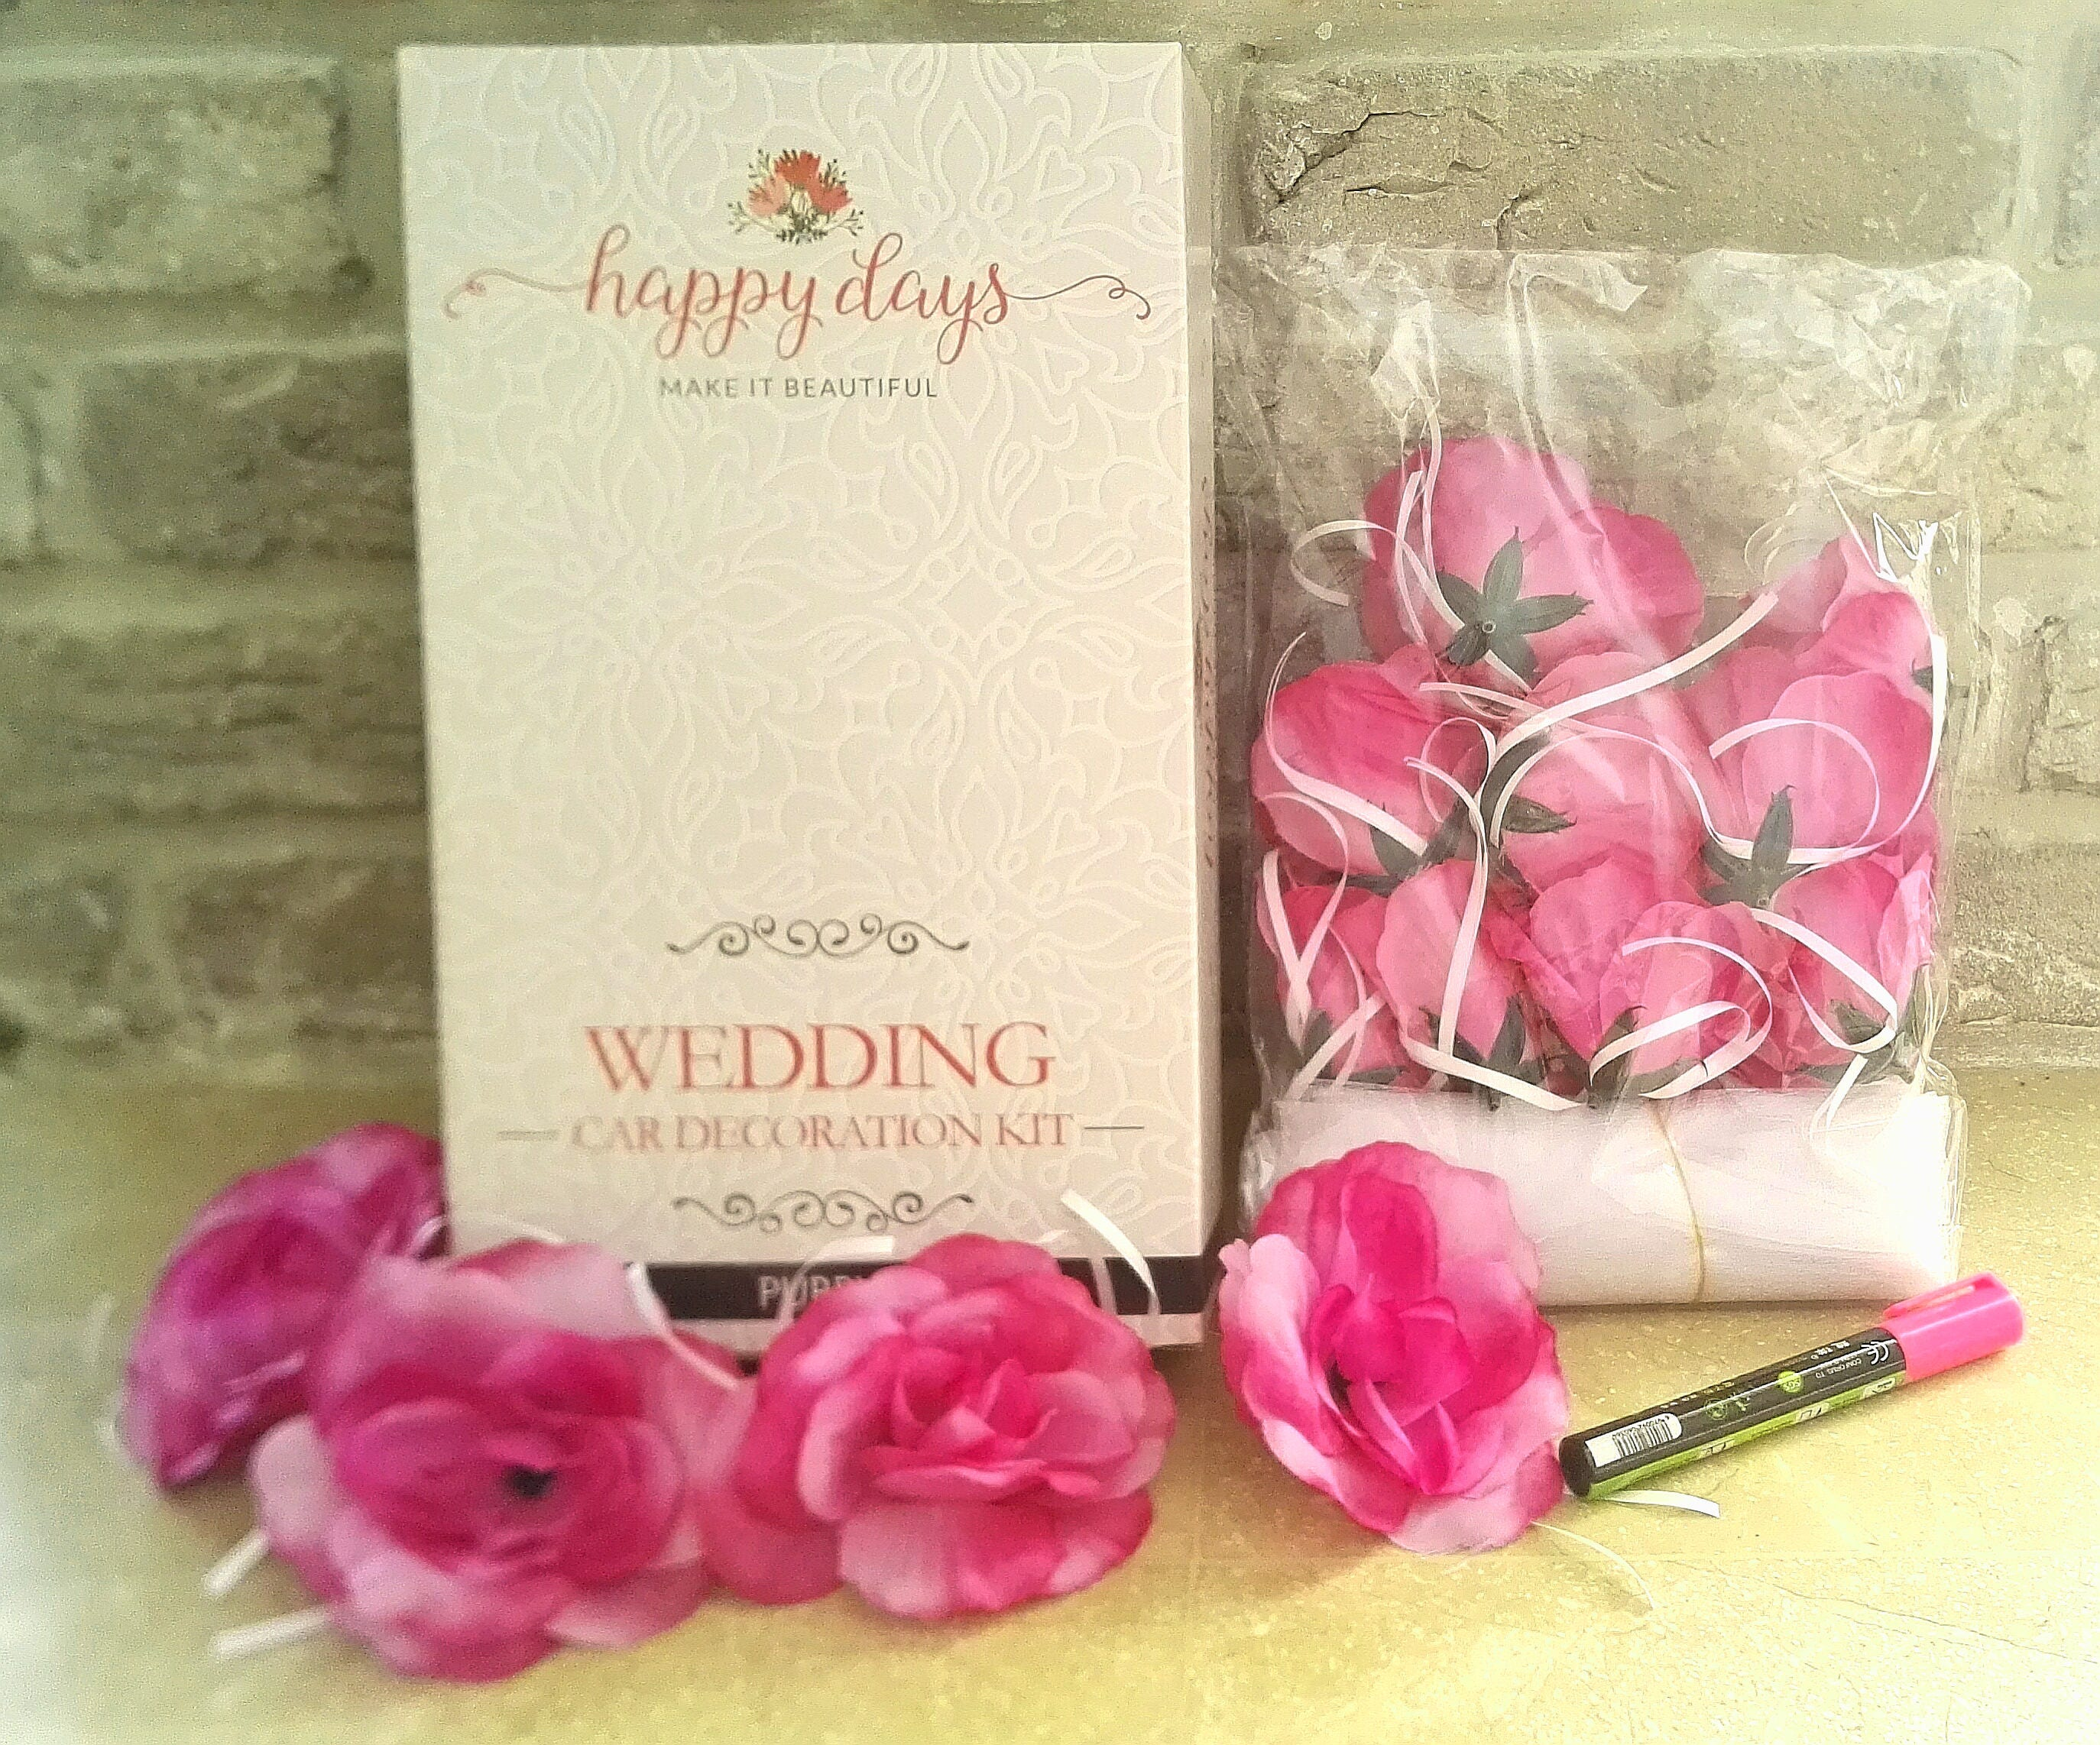 Wedding Car Decorating Kit: Organza Ribbon with artificial Flowers ...